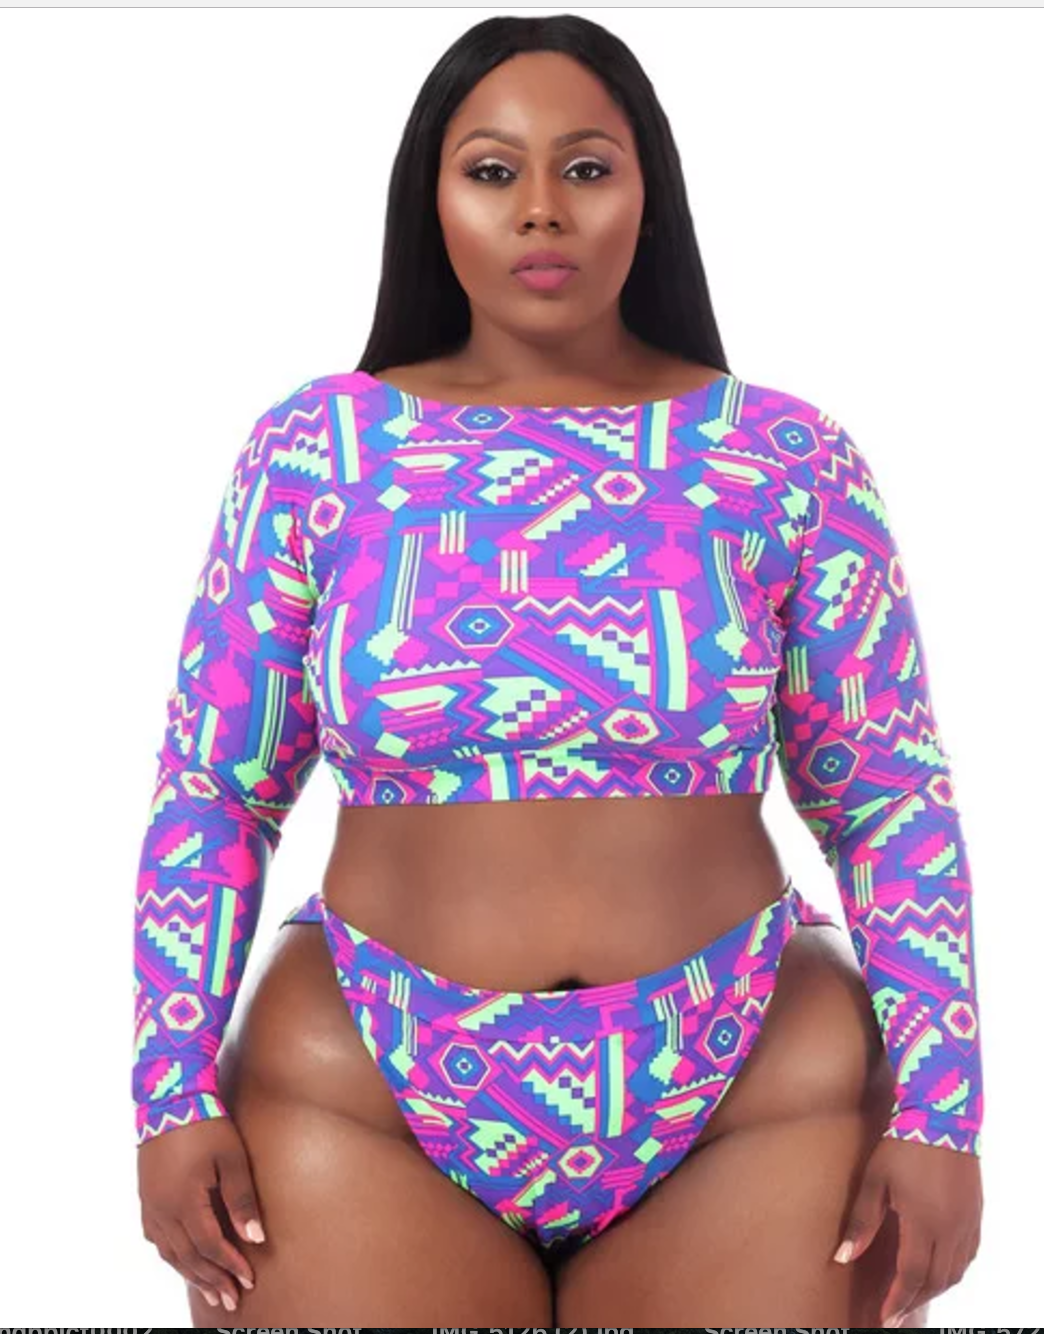 d4089647f80 BUYBLACK  This New Black-Owned Plus Size Swimwear Line is EVERYTHING ...